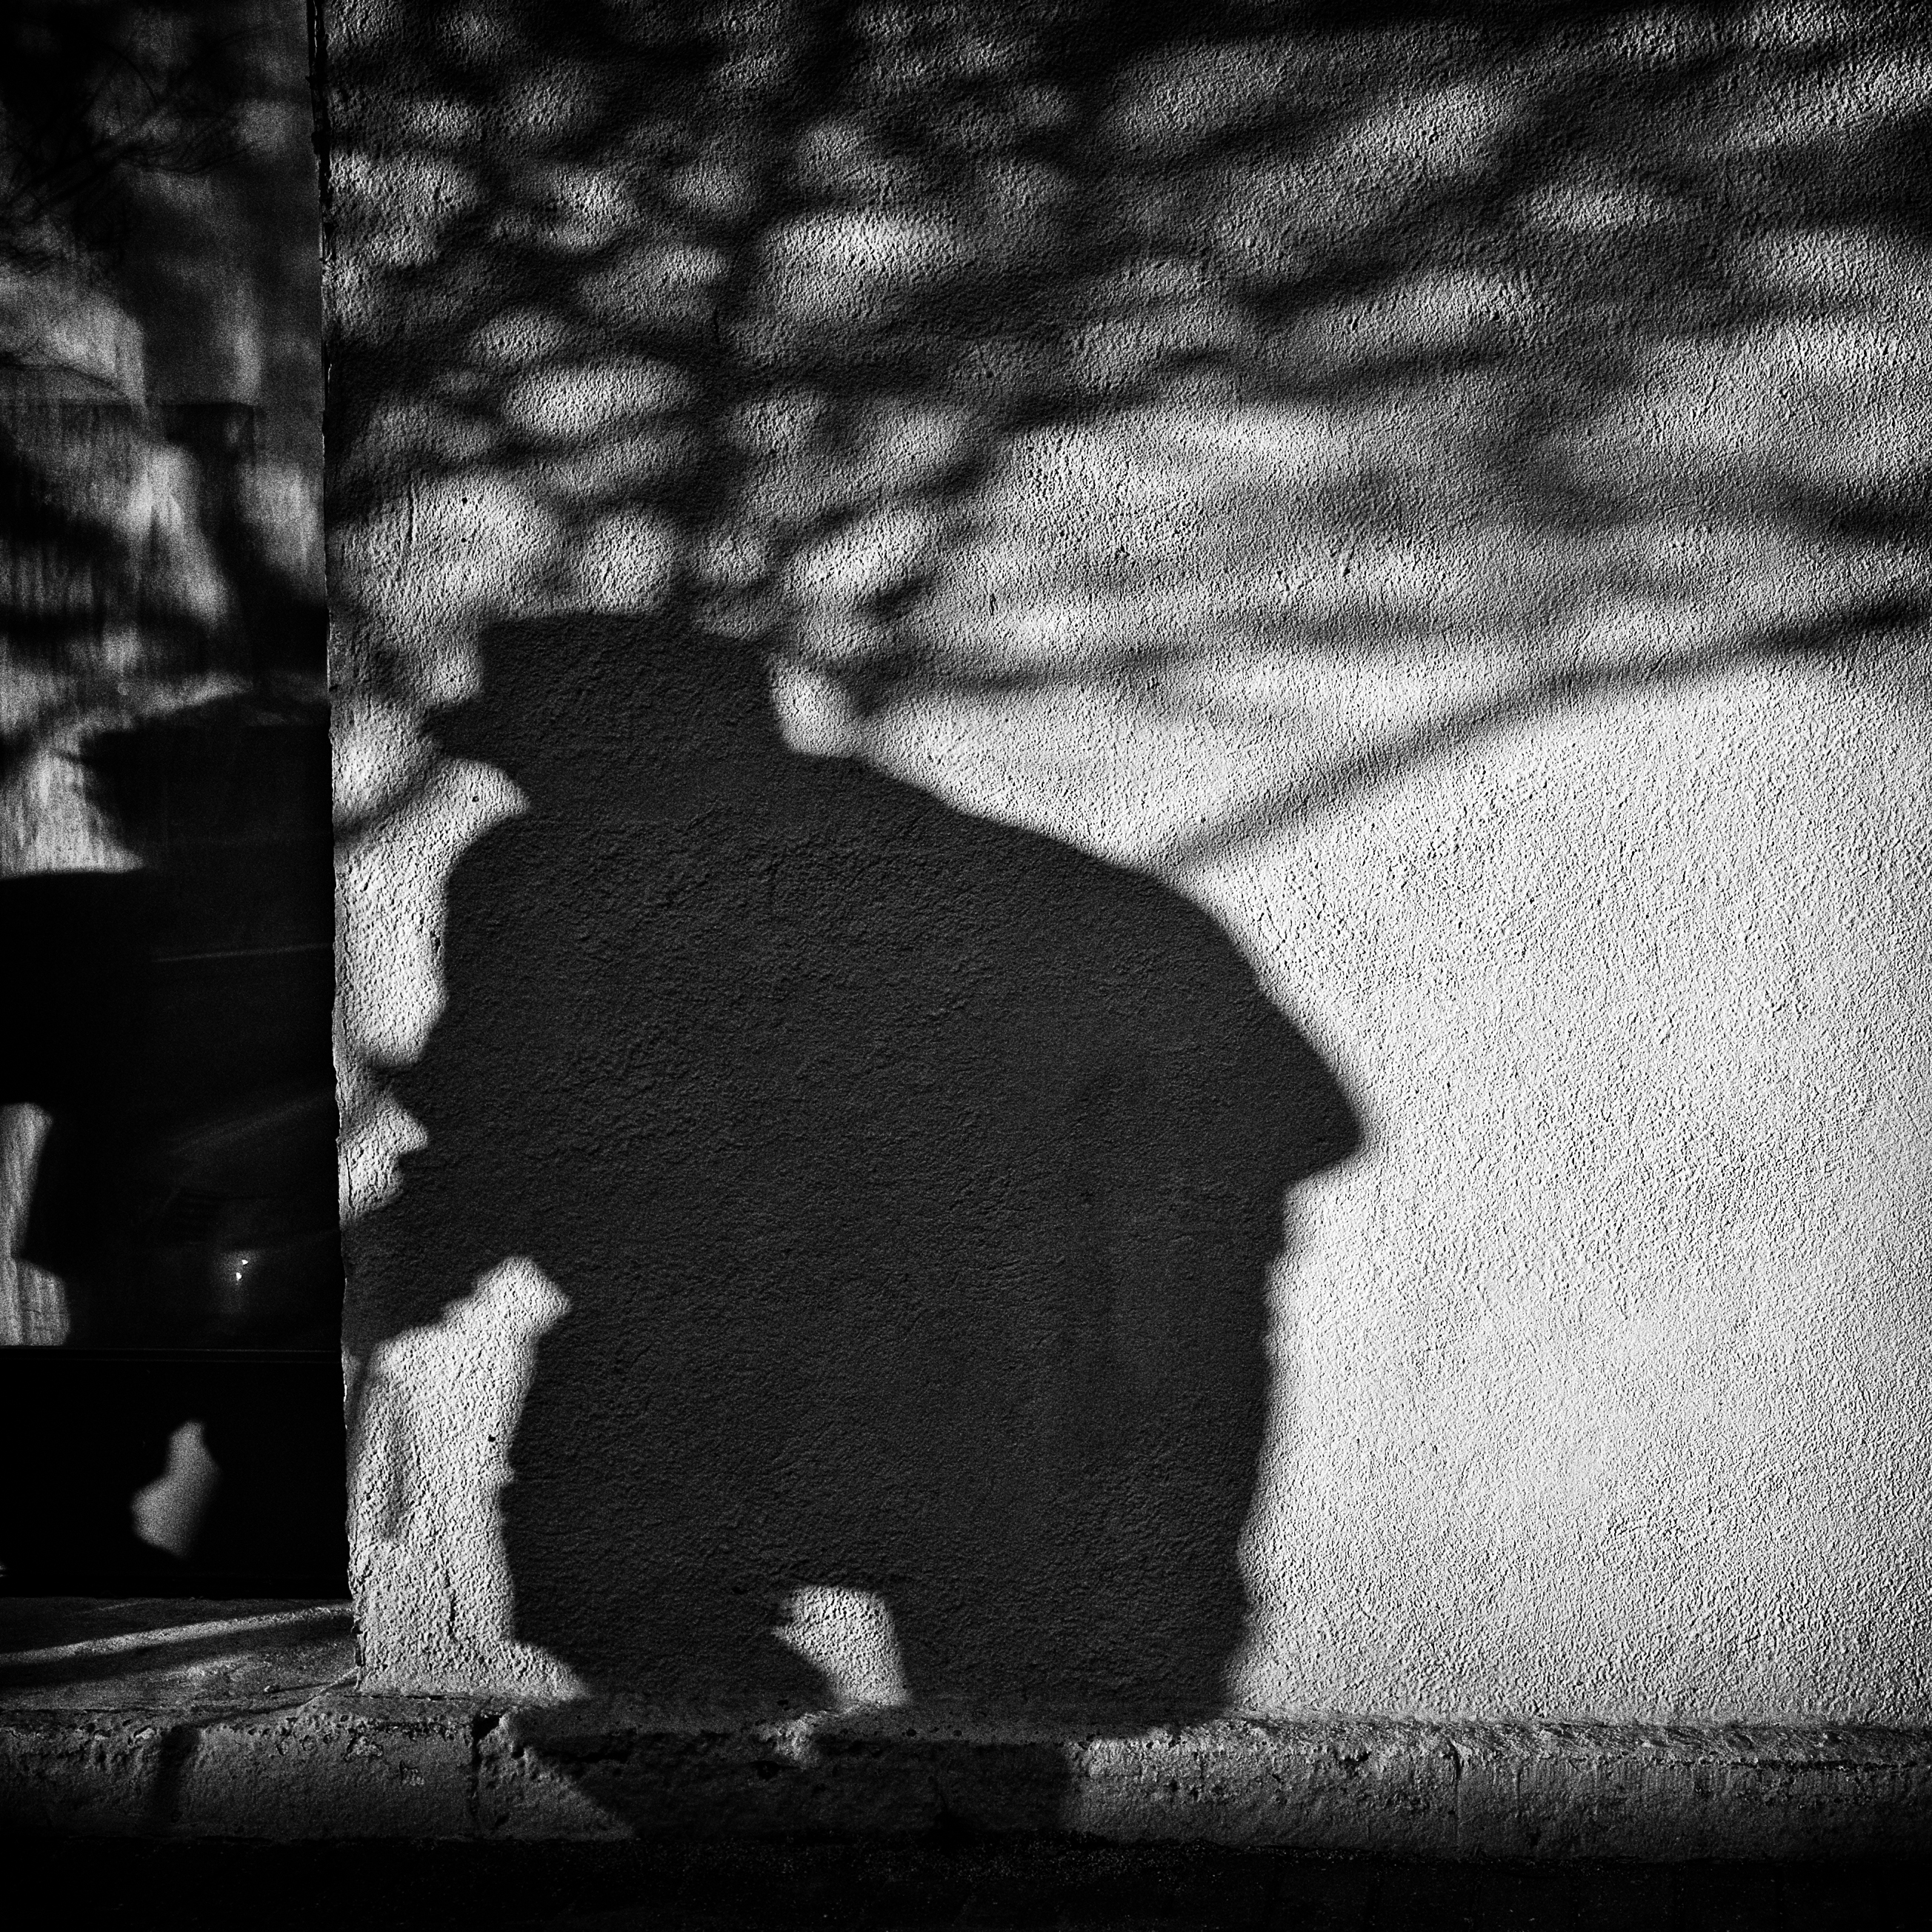 An image of a creepy shadow